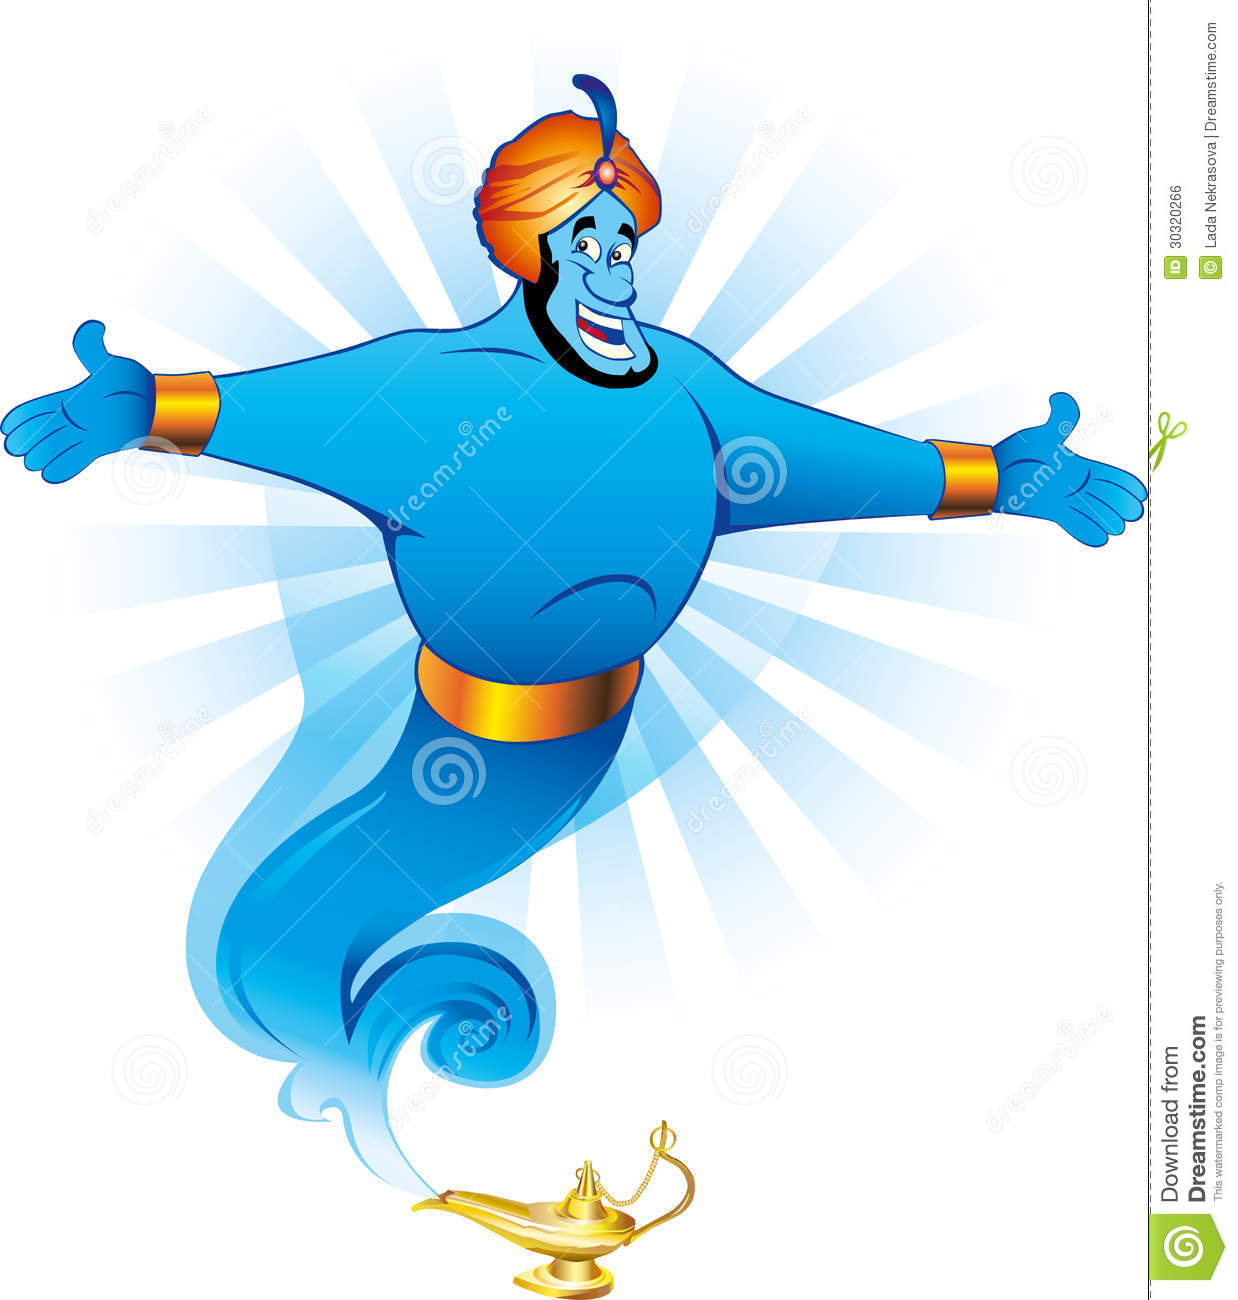 Magic Genie Granting The Wish Royalty Free Stock Image - Image ...